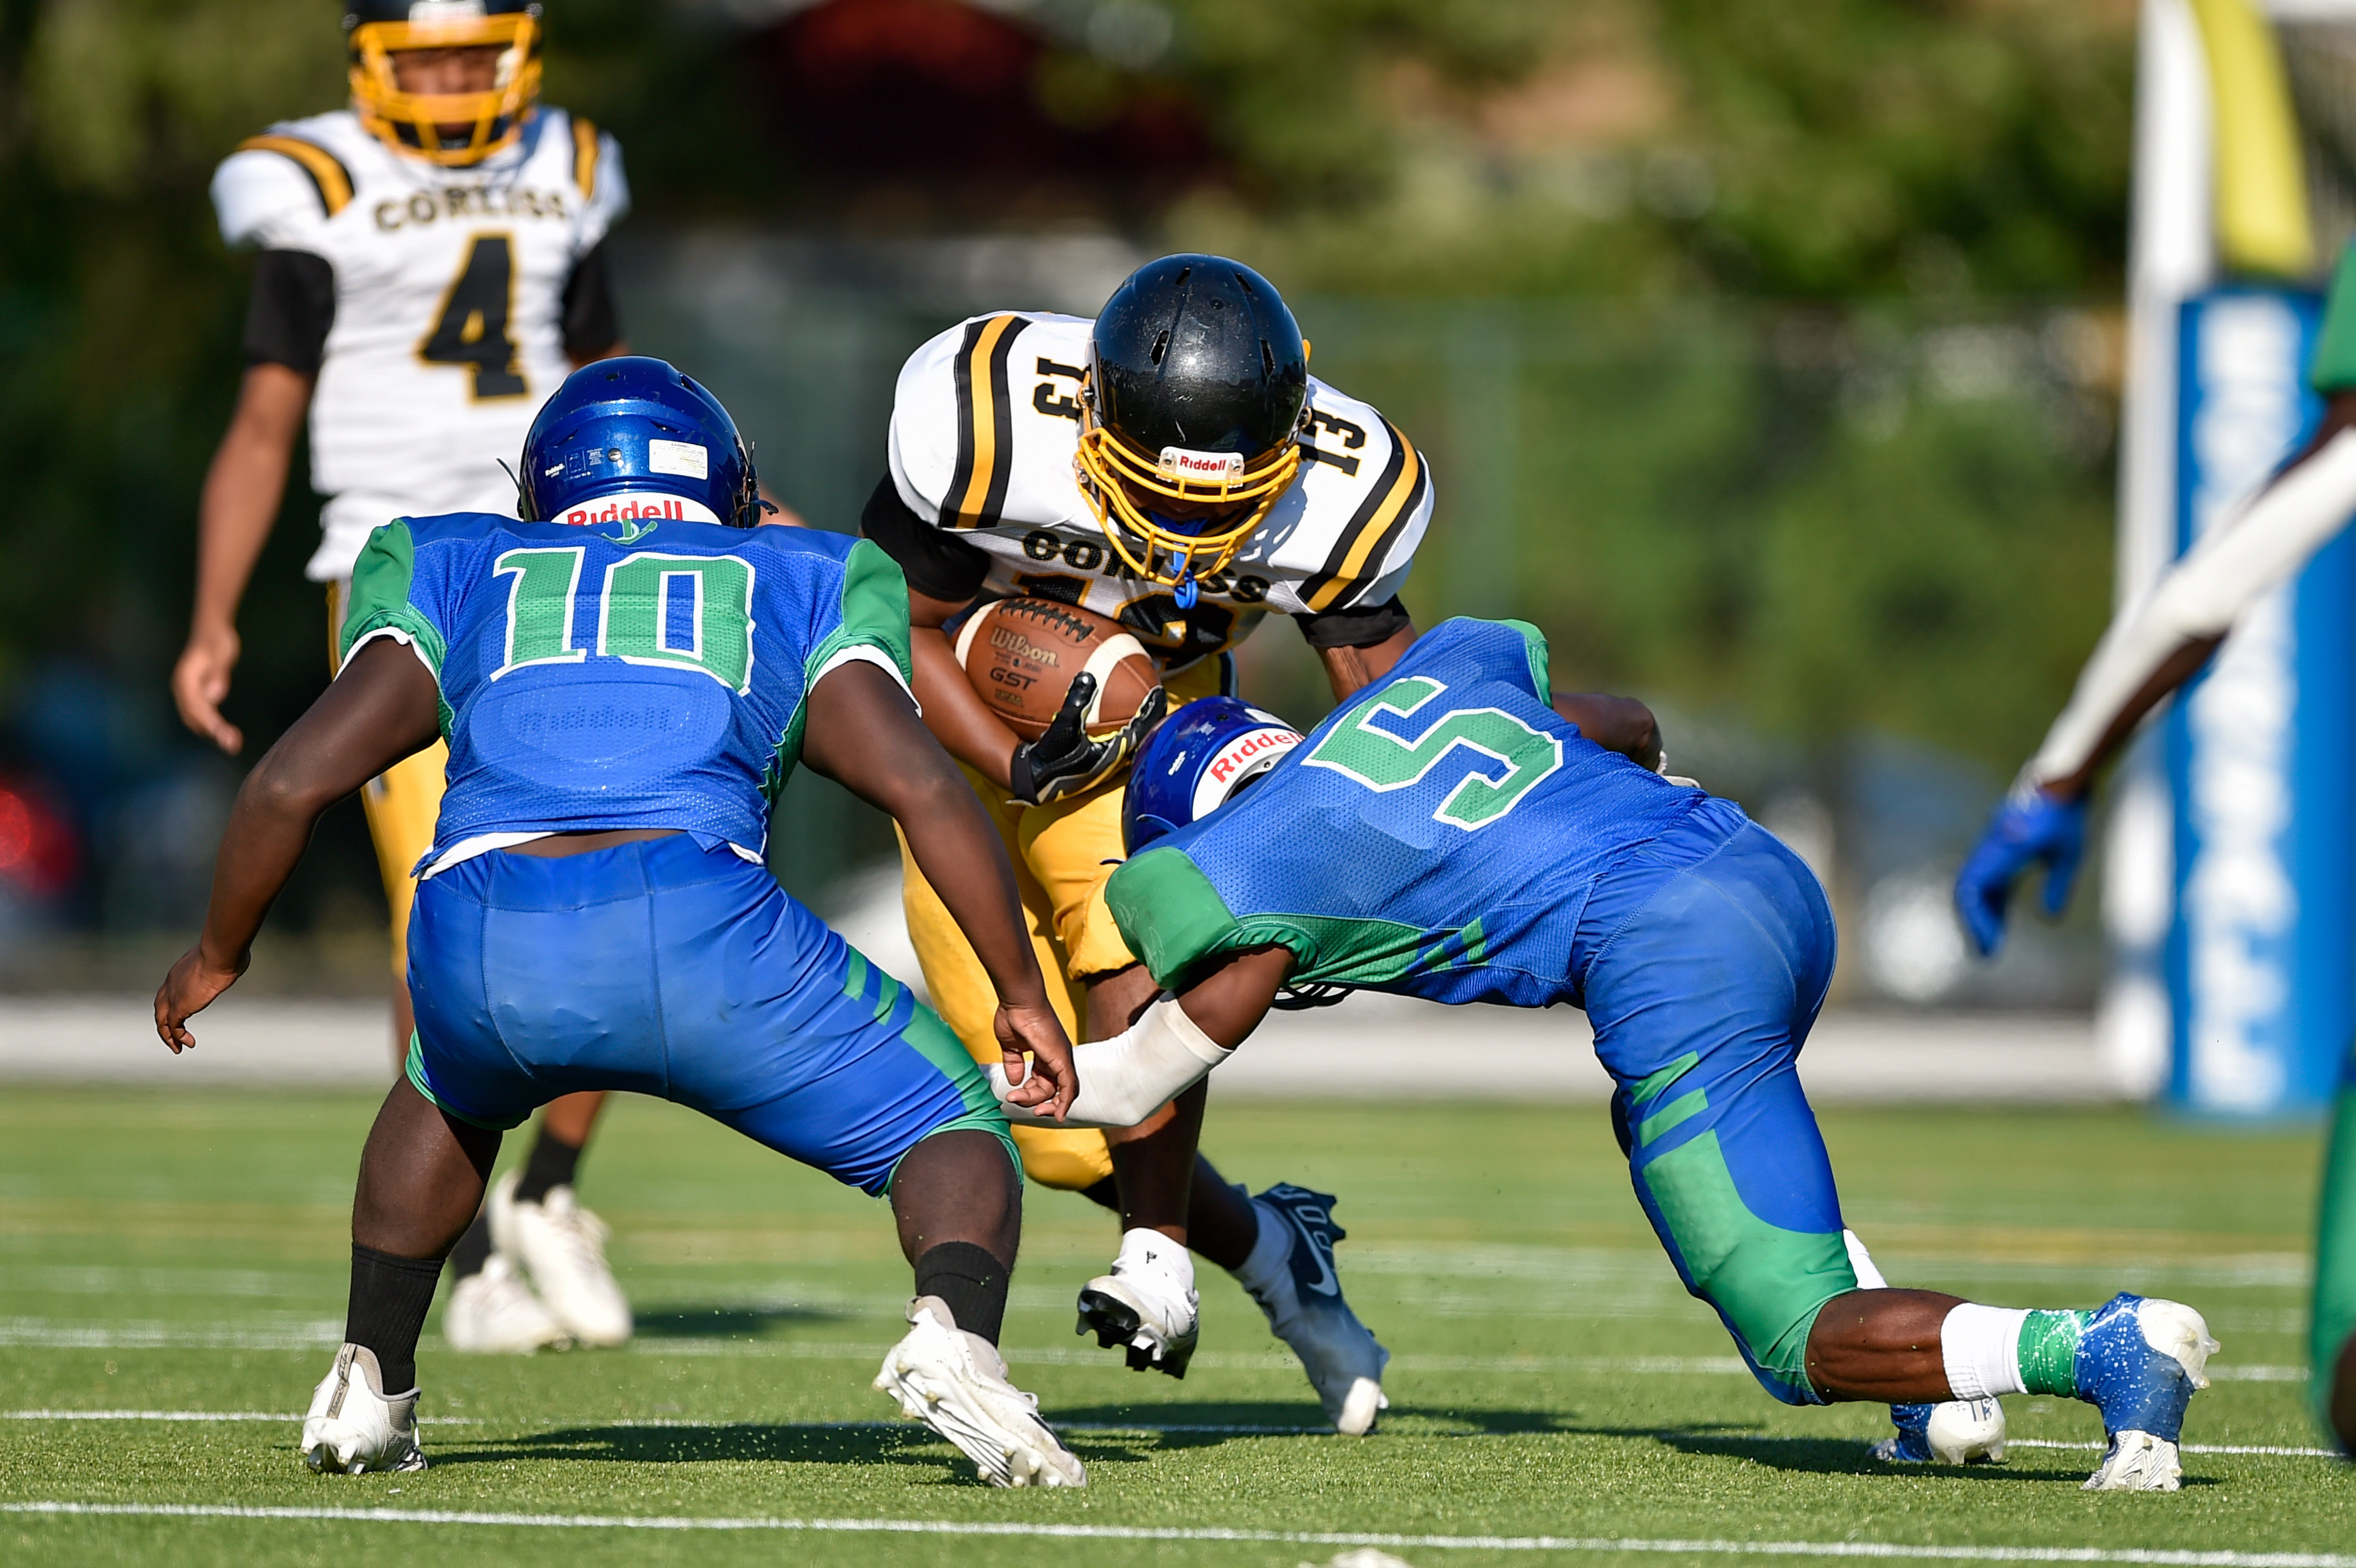 Corliss' Malachi Smith (13) is tackled by South Shore's Kristian Nelson (5) and Justin Norris (10).